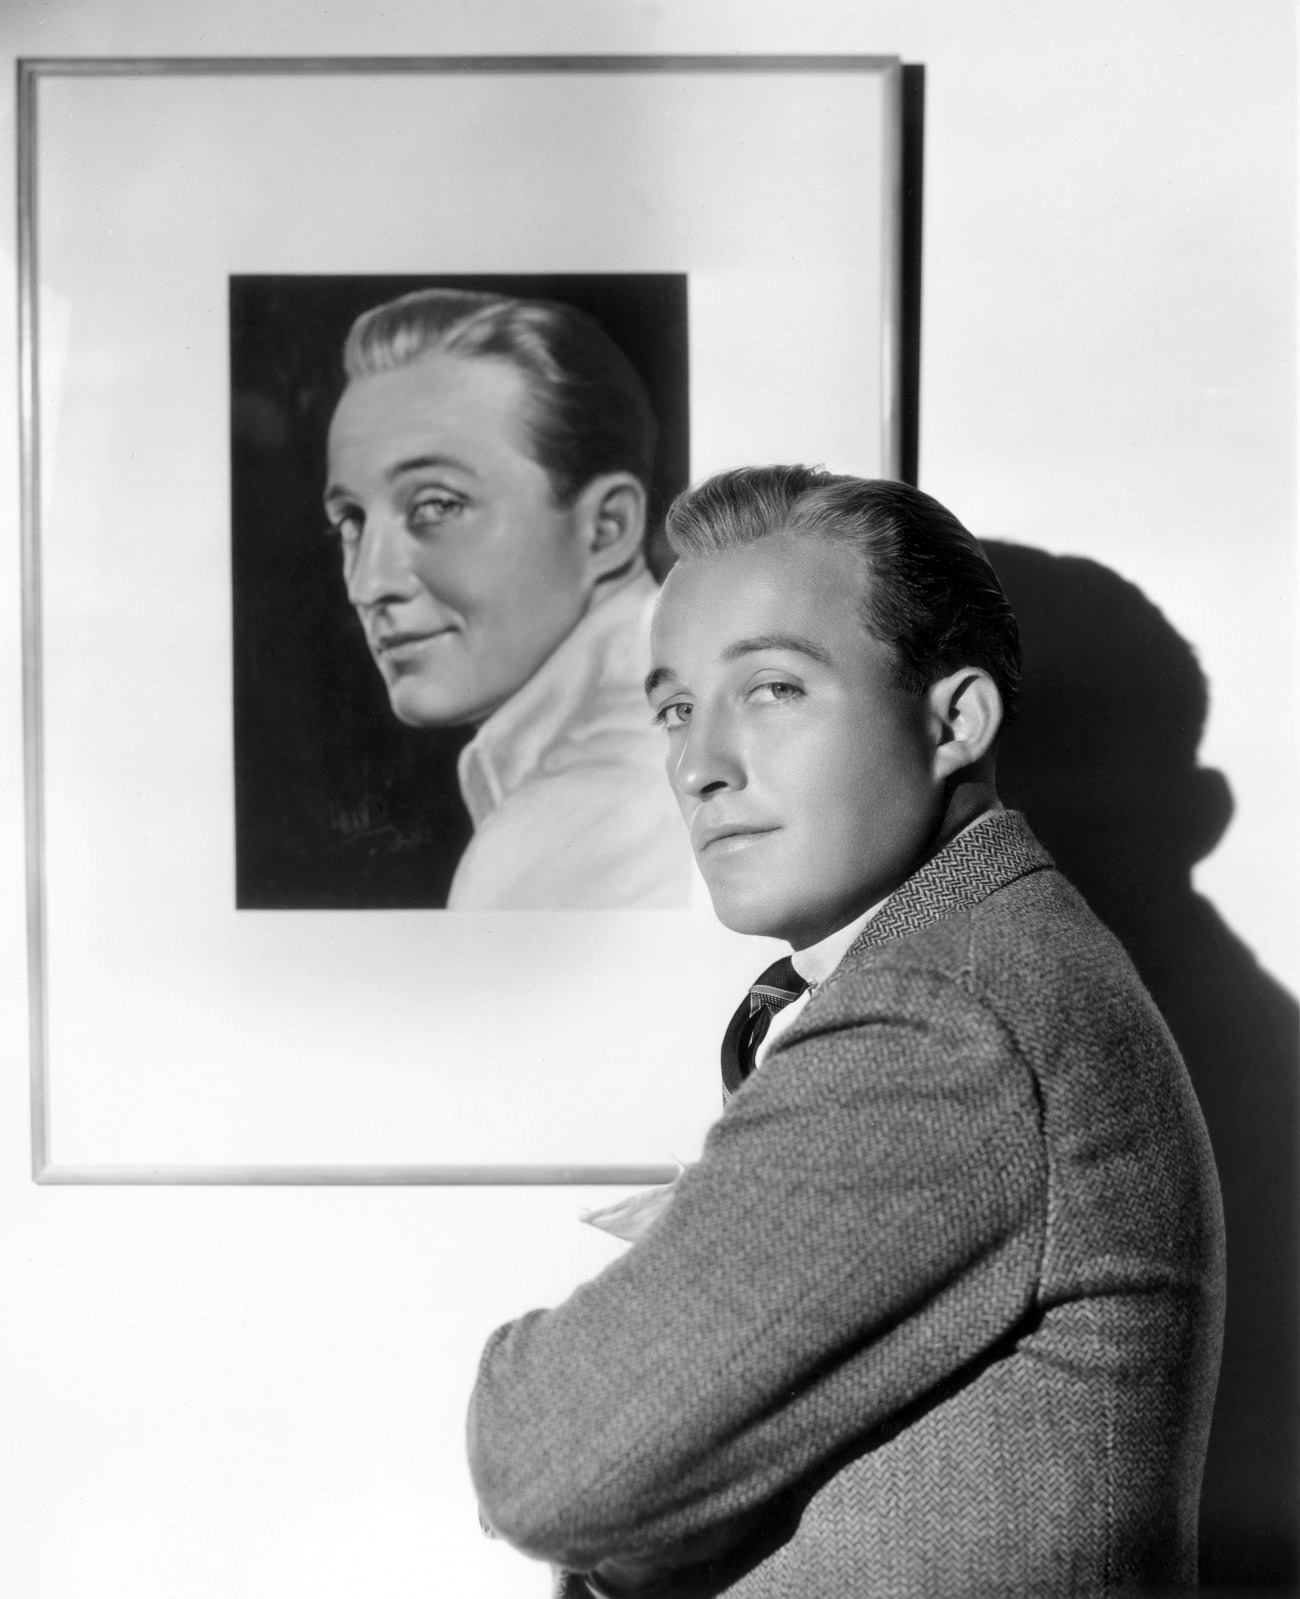 THE BING CROSBY NEWS ARCHIVE: THE INFLUENCE OF BING